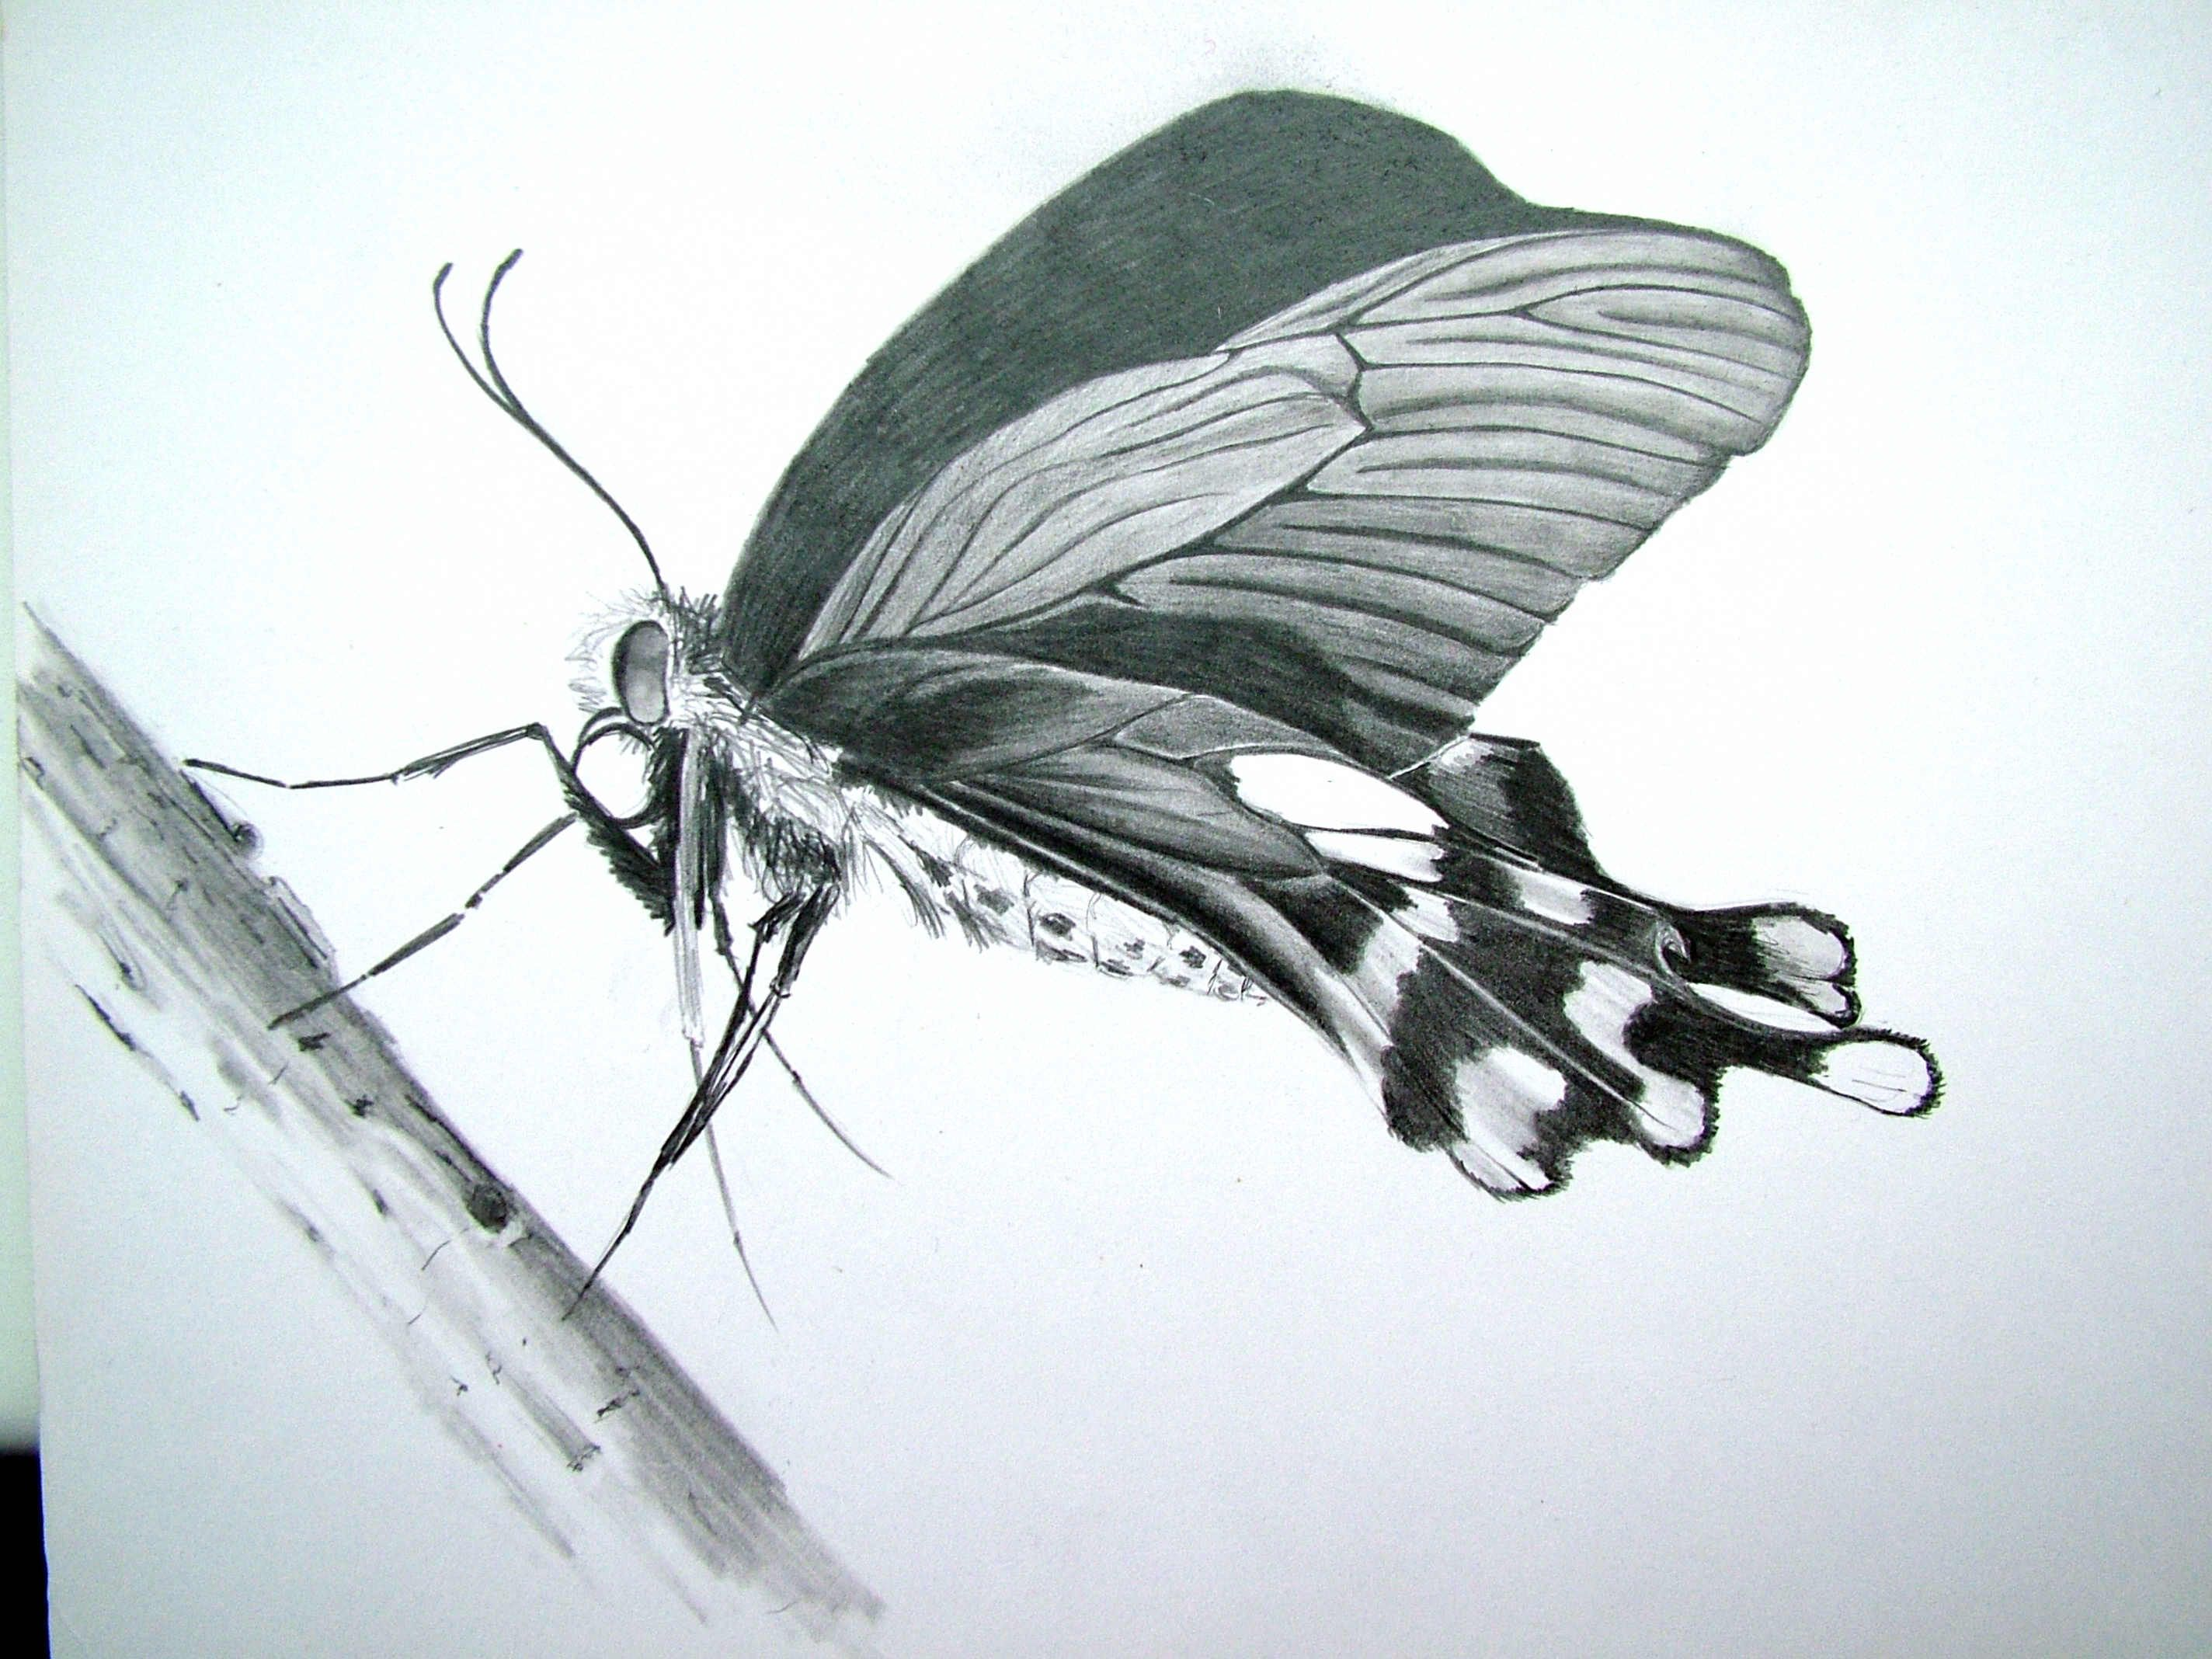 vanessa butterfly drawing images - HD2848×2136